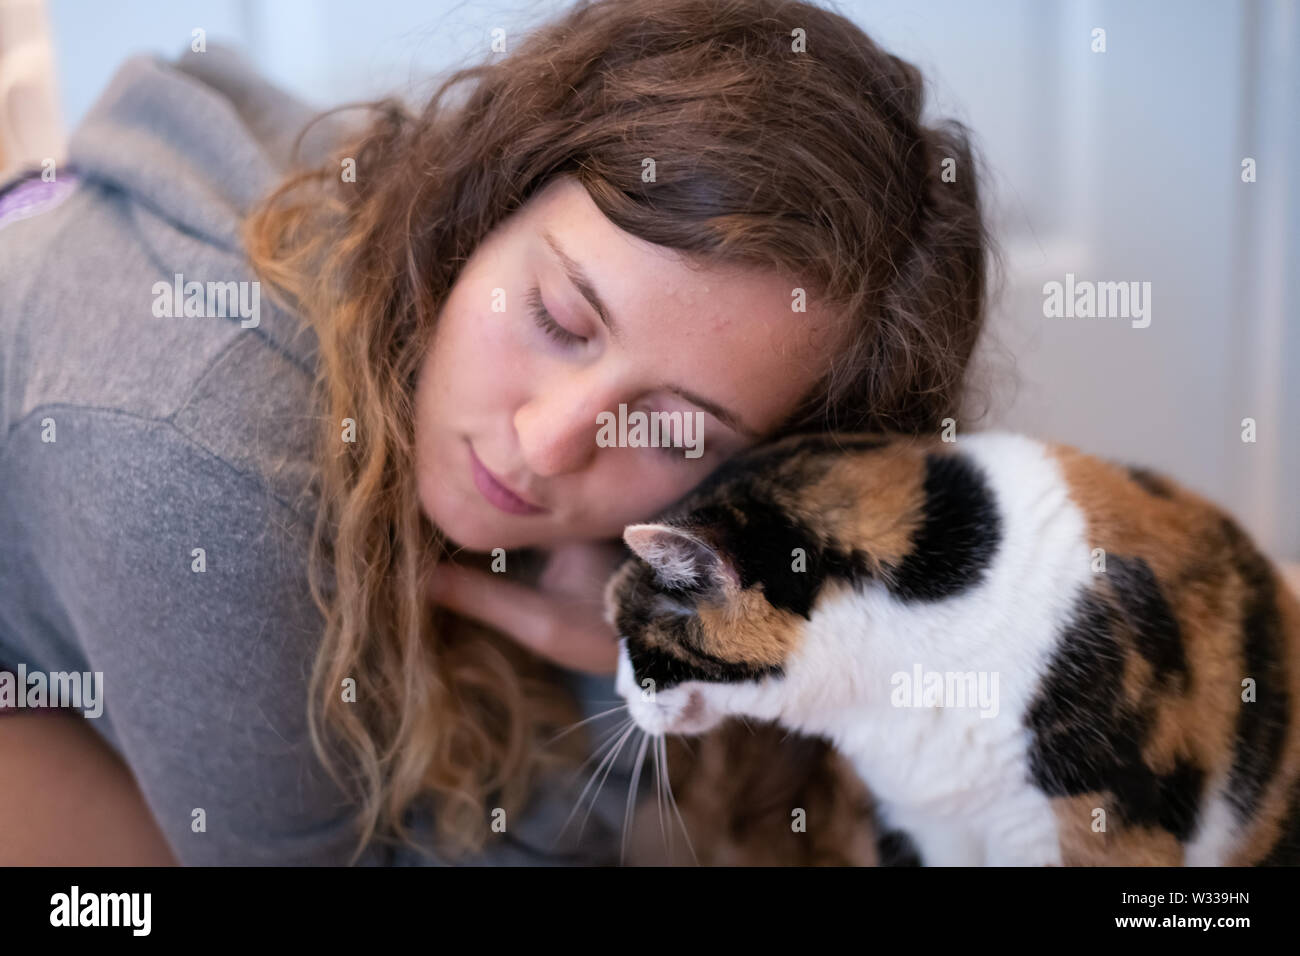 Closeup portrait of young woman bonding with calico cat pet companion, bumping rubbing bunting heads, friends showing affection - Stock Image